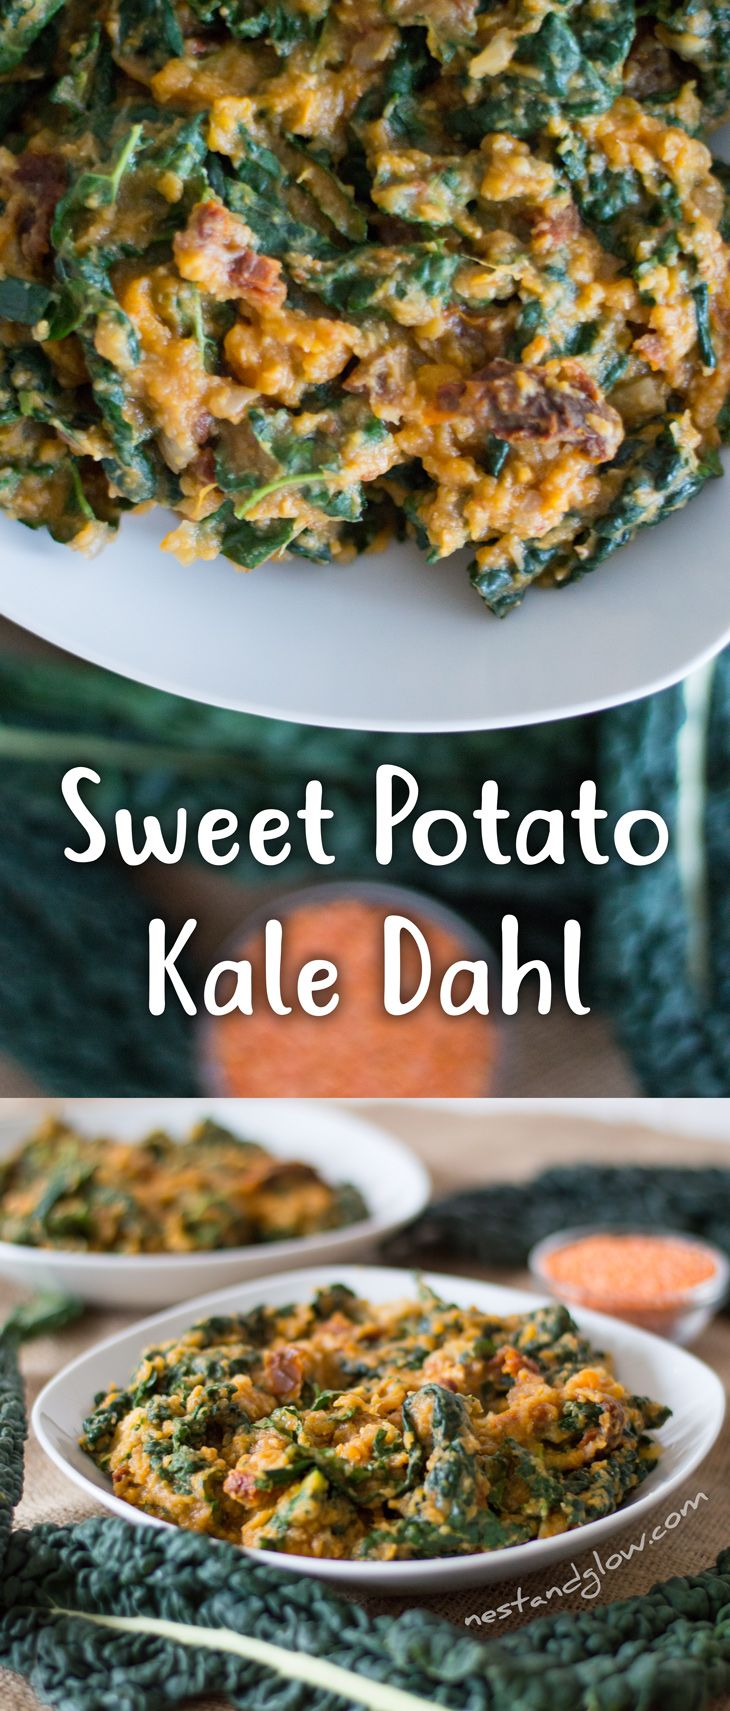 Sweet Potato and Kale Dahl Recipe - easy, vegan, cheap, healthy via @nestandglow